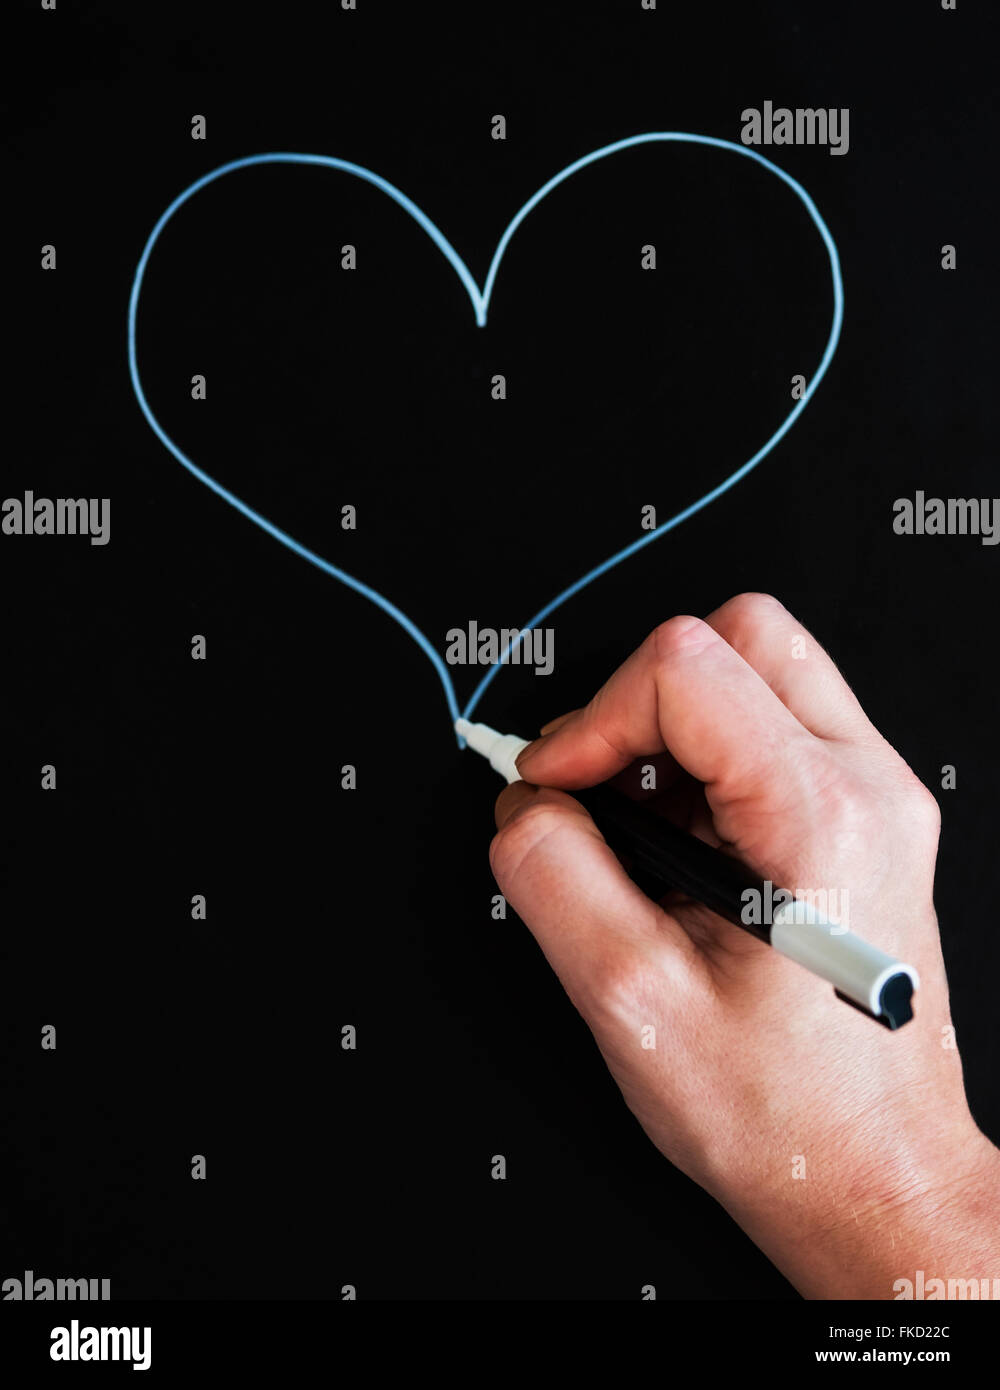 Man's hand drawing heart shape on black paper - Stock Image